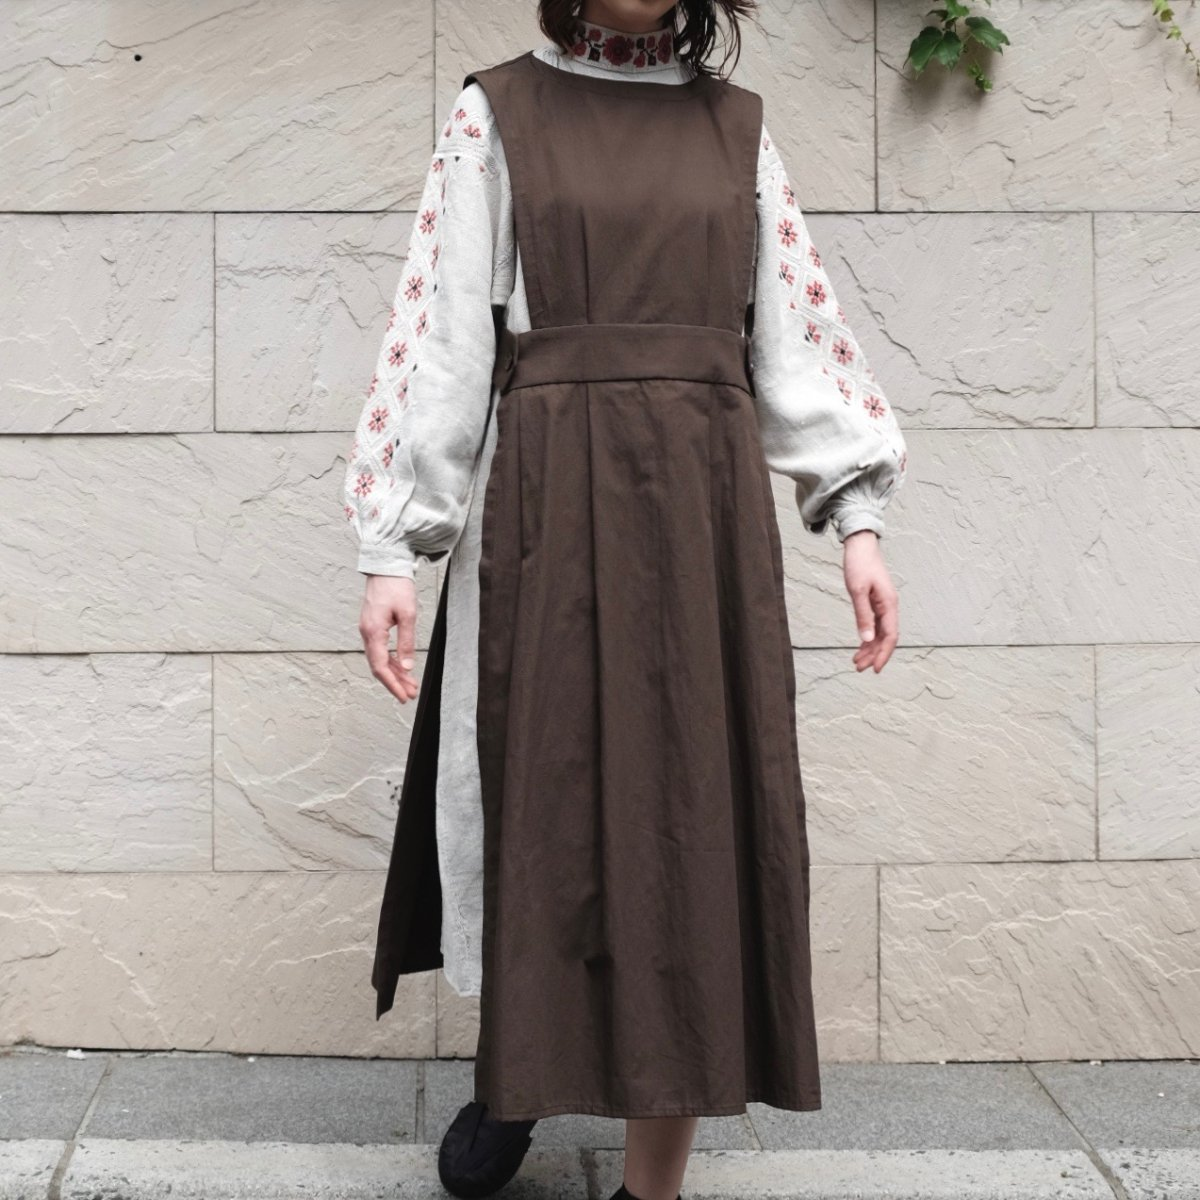 Apron Dress (Chocolate) by suie